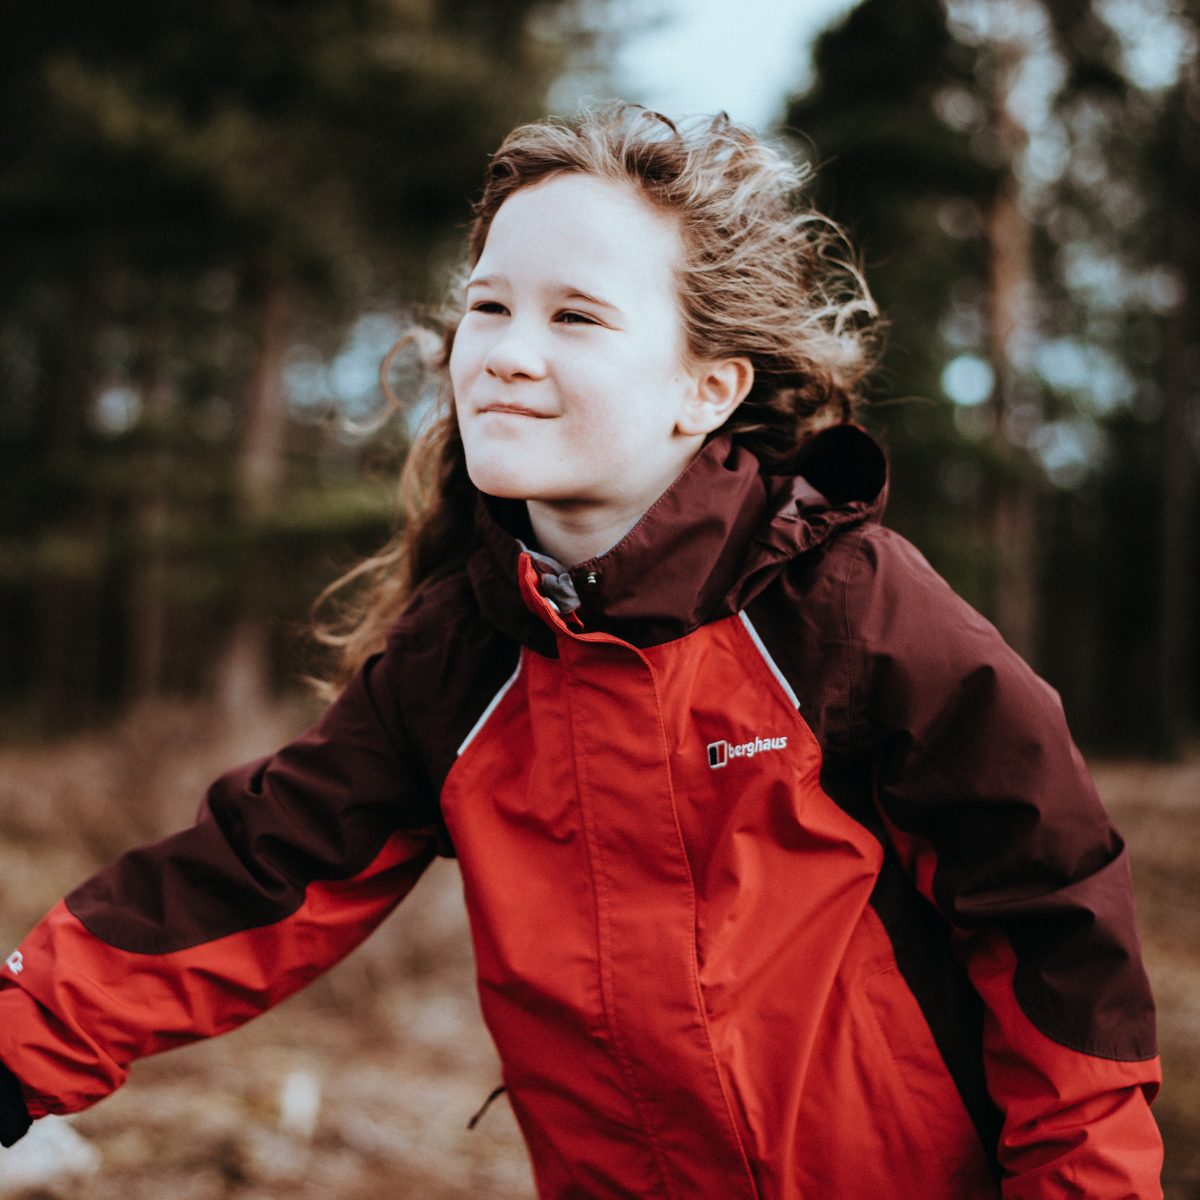 Girl running outdoors in red waterproof coat